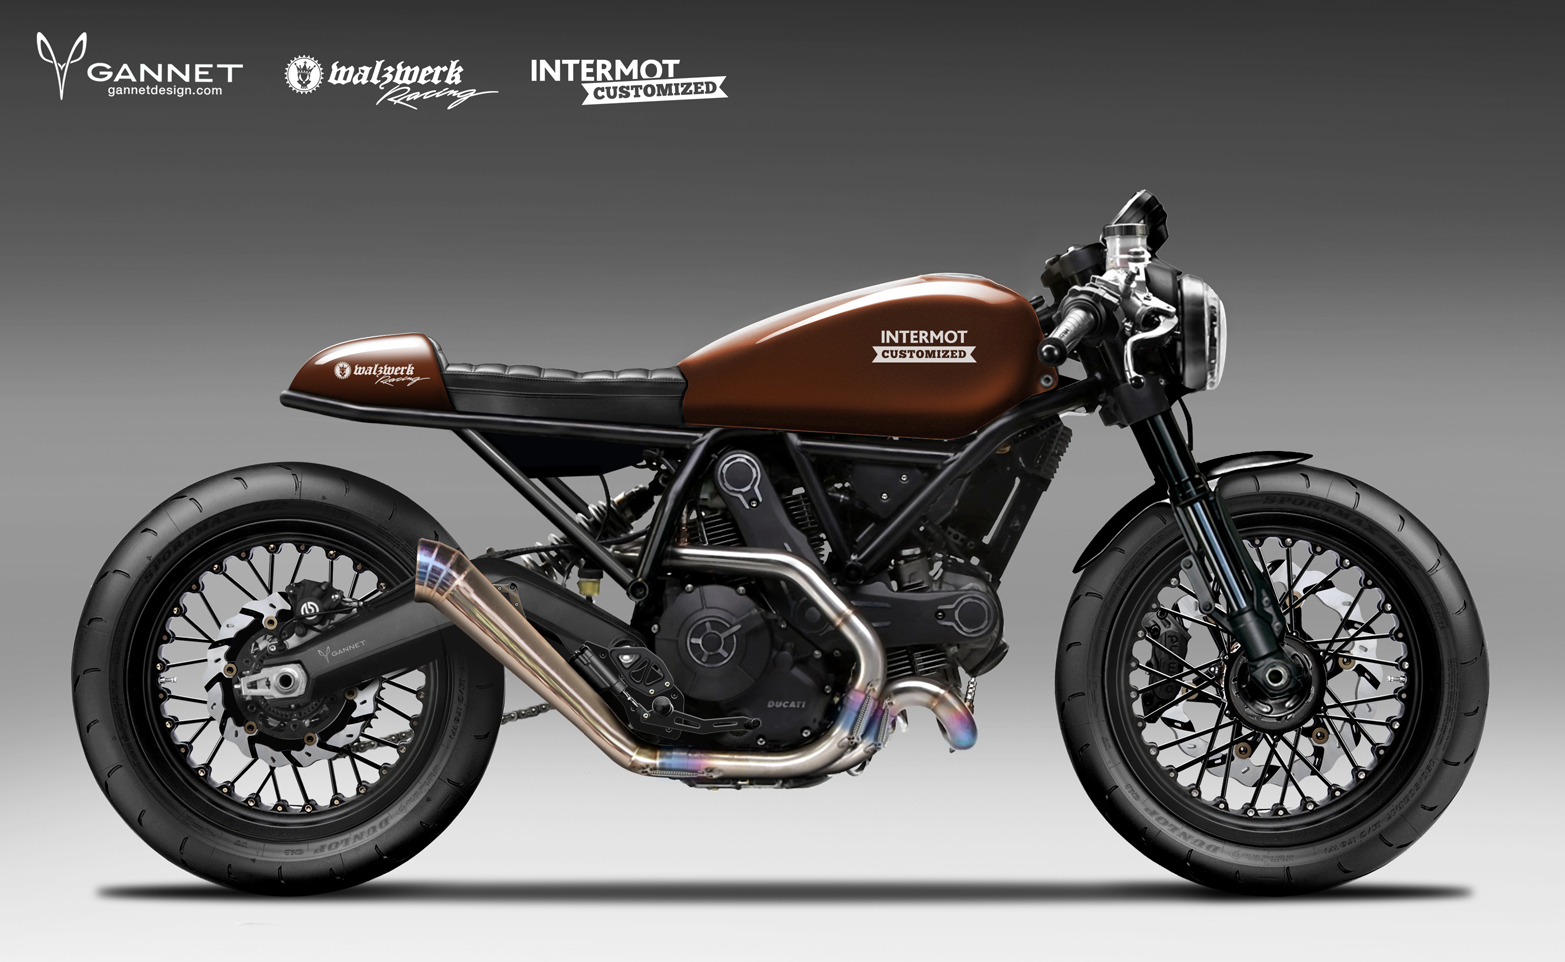 The Best Cafe Racer Motorcycles